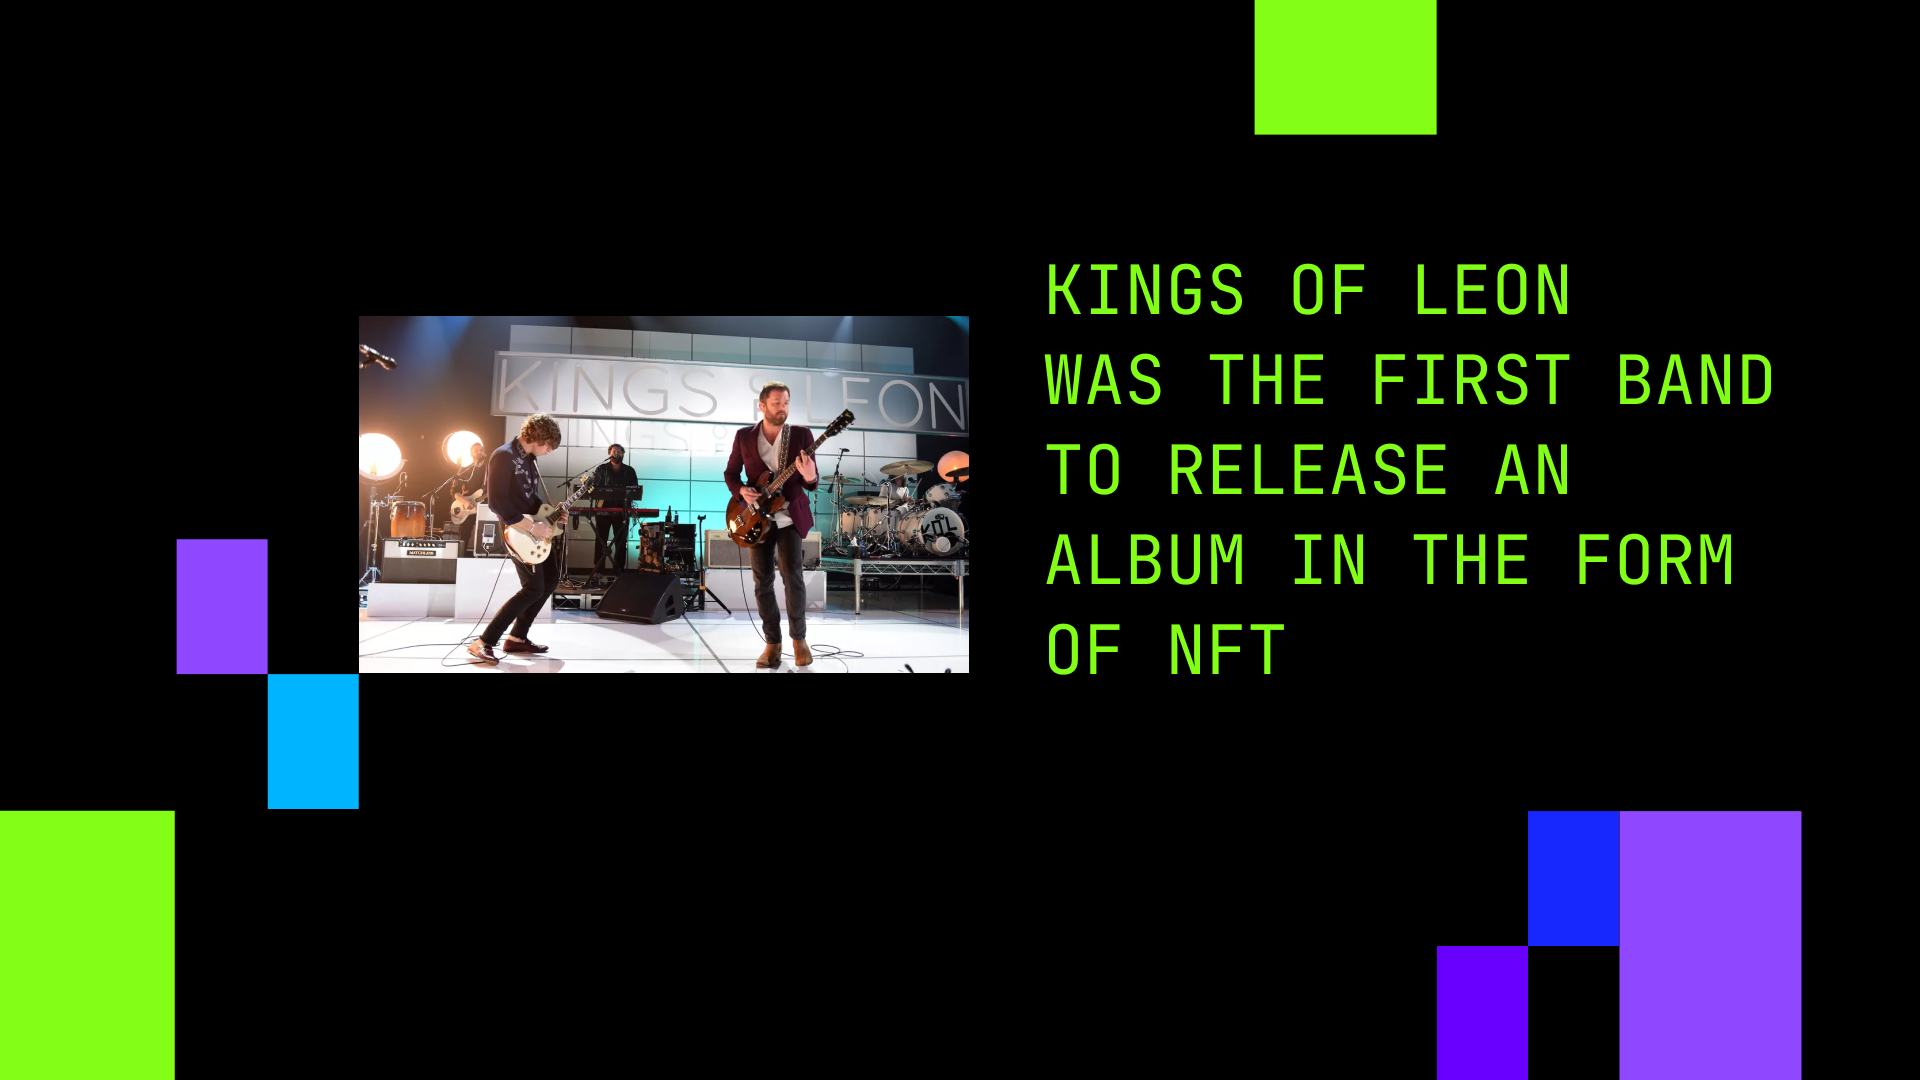 Kings of Leon was the first band to release an album in the form of NFT